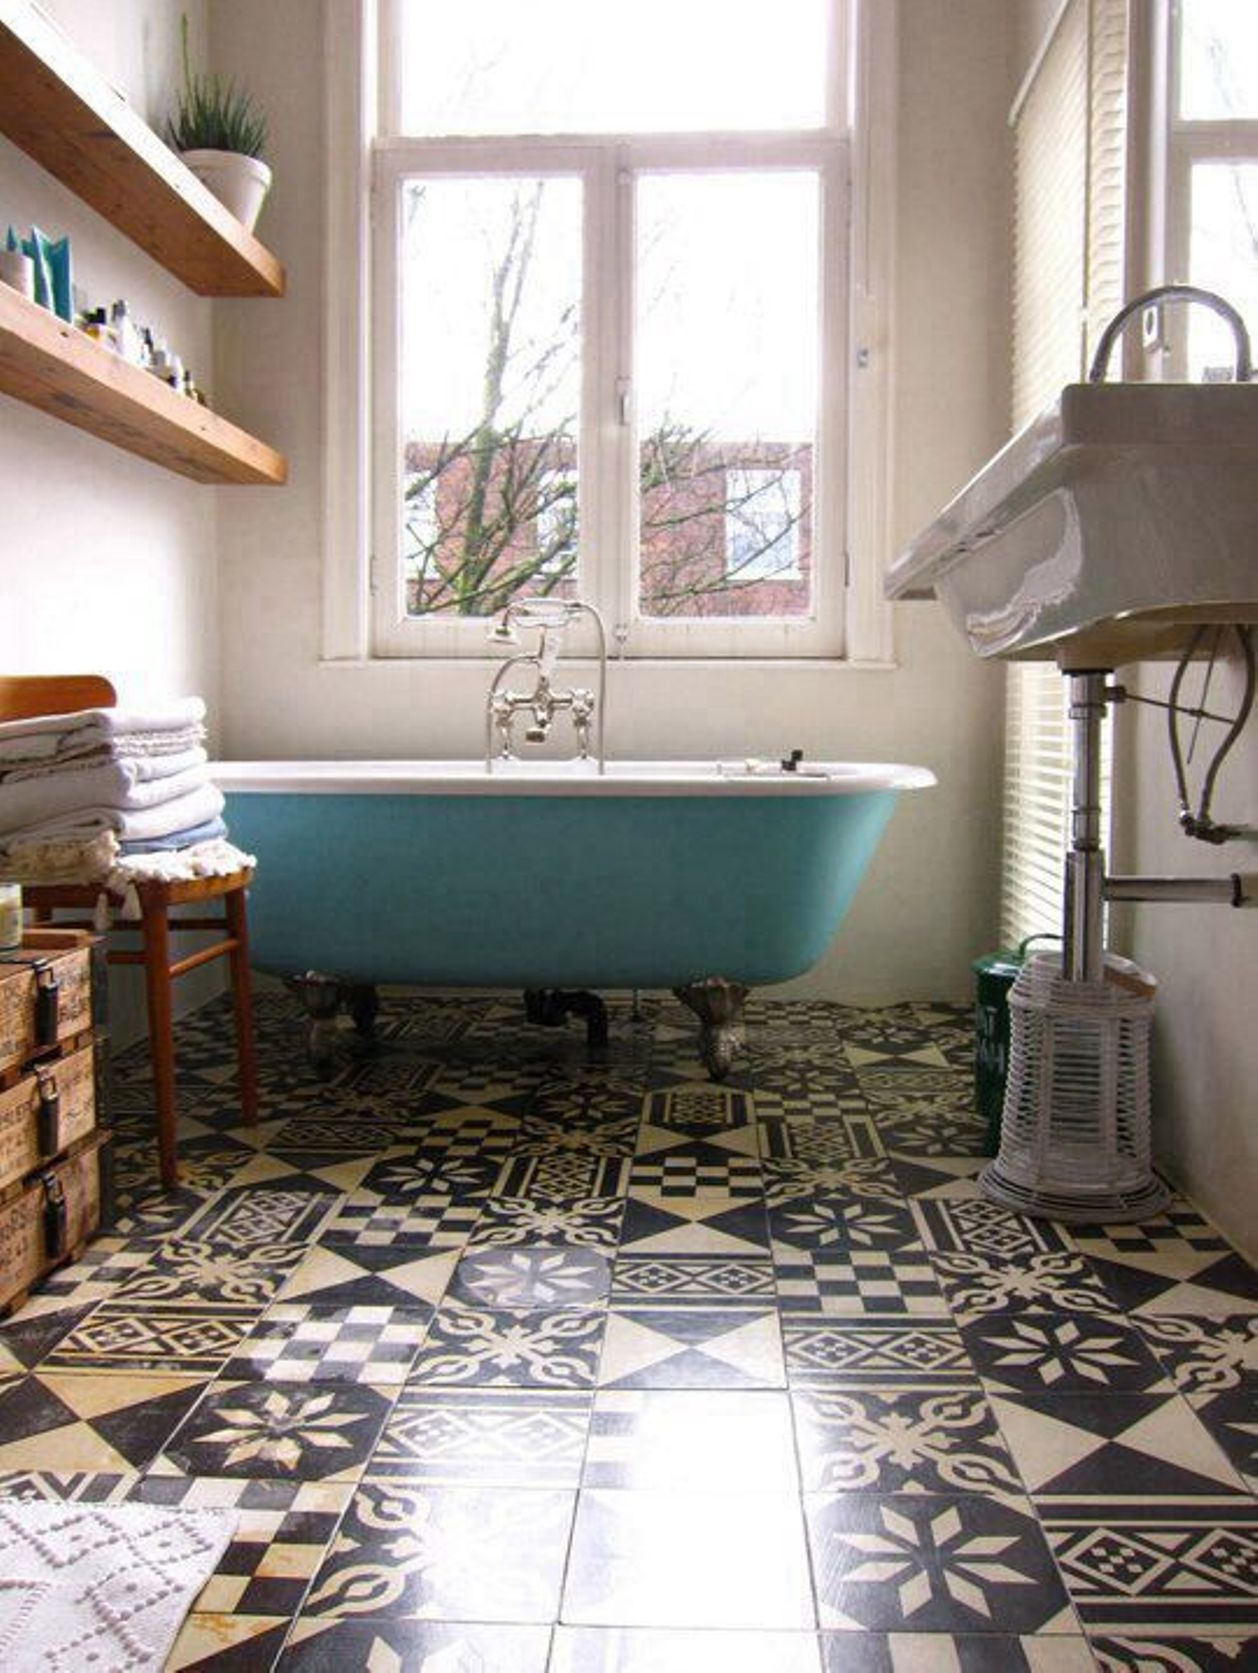 20 great pictures and ideas of vintage bathroom floor tile - Salle de bain retro ...